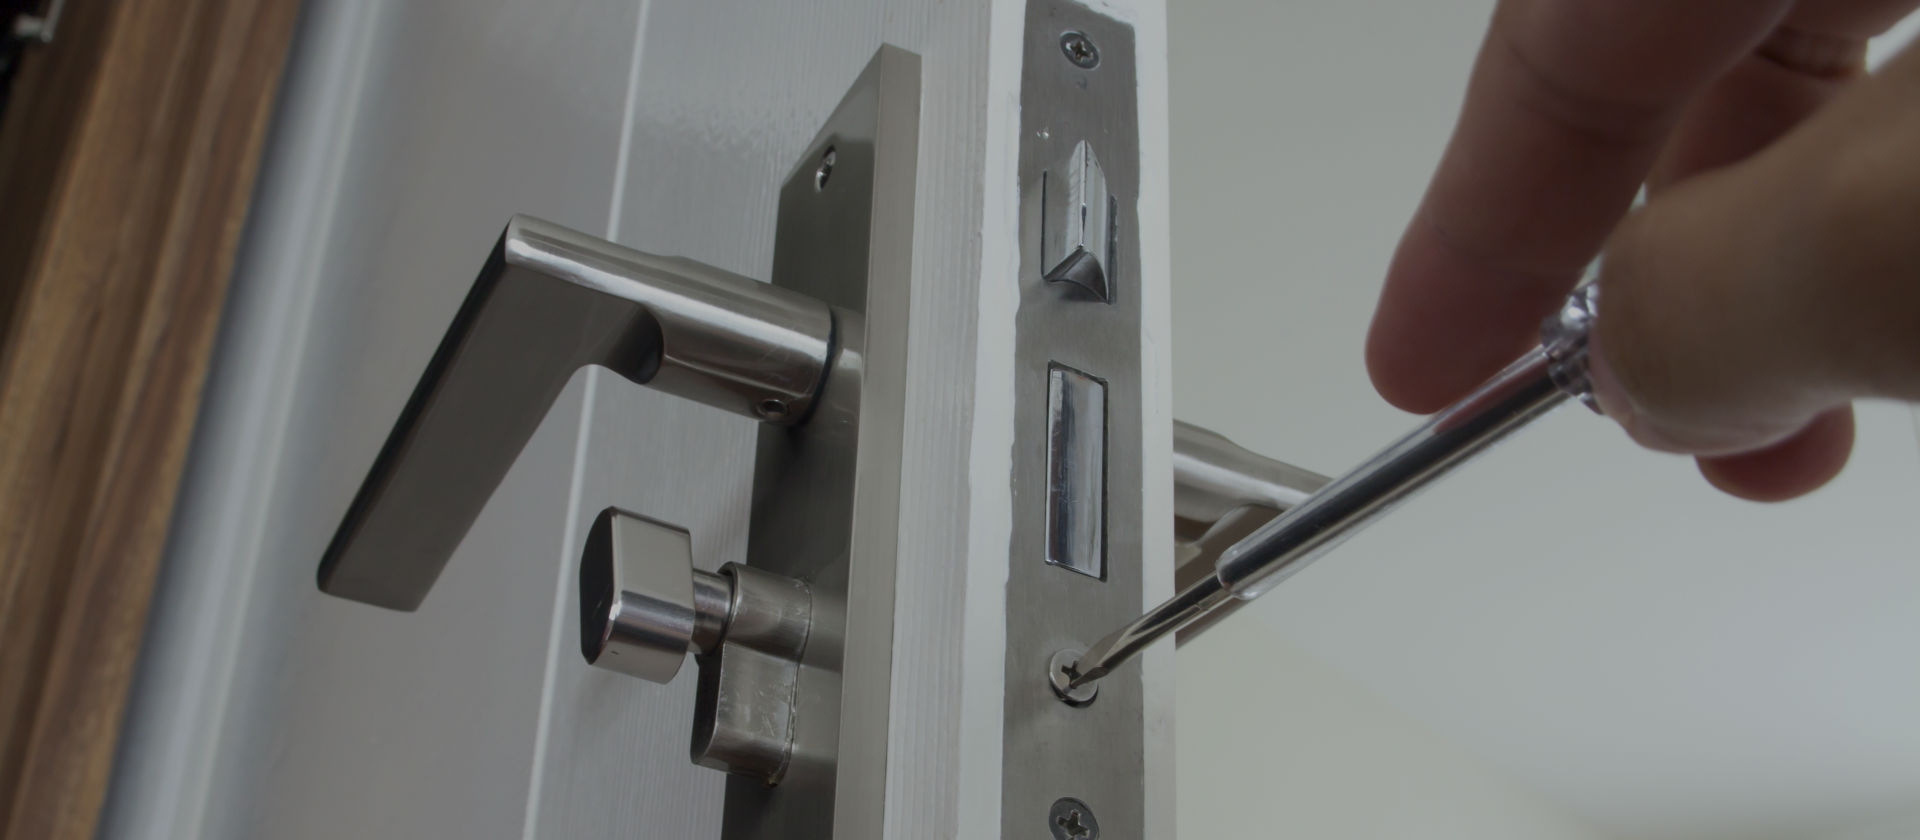 24 Hour Locksmith Services What Is An Anti Bump Lock And Why Is It Used Anti Bump Lock  Locksmiths Lockfit Local Locksmith Emergency Locksmiths Anti Bump Lock